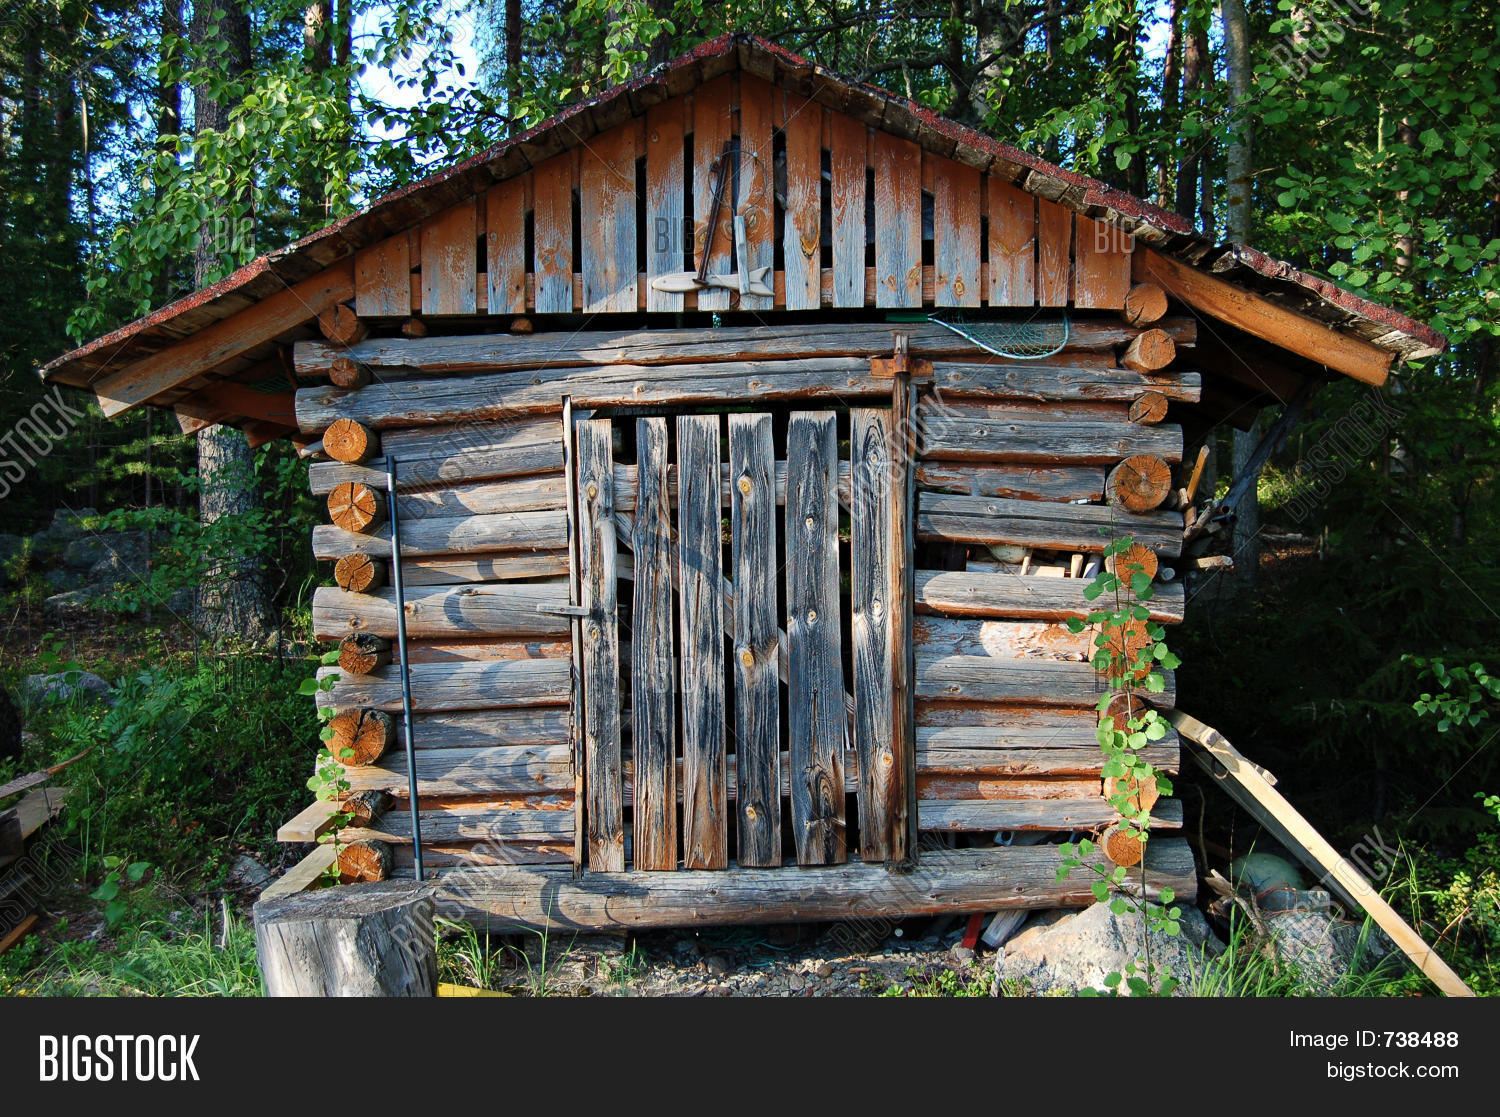 Wood shack image photo bigstock for Small shack plans